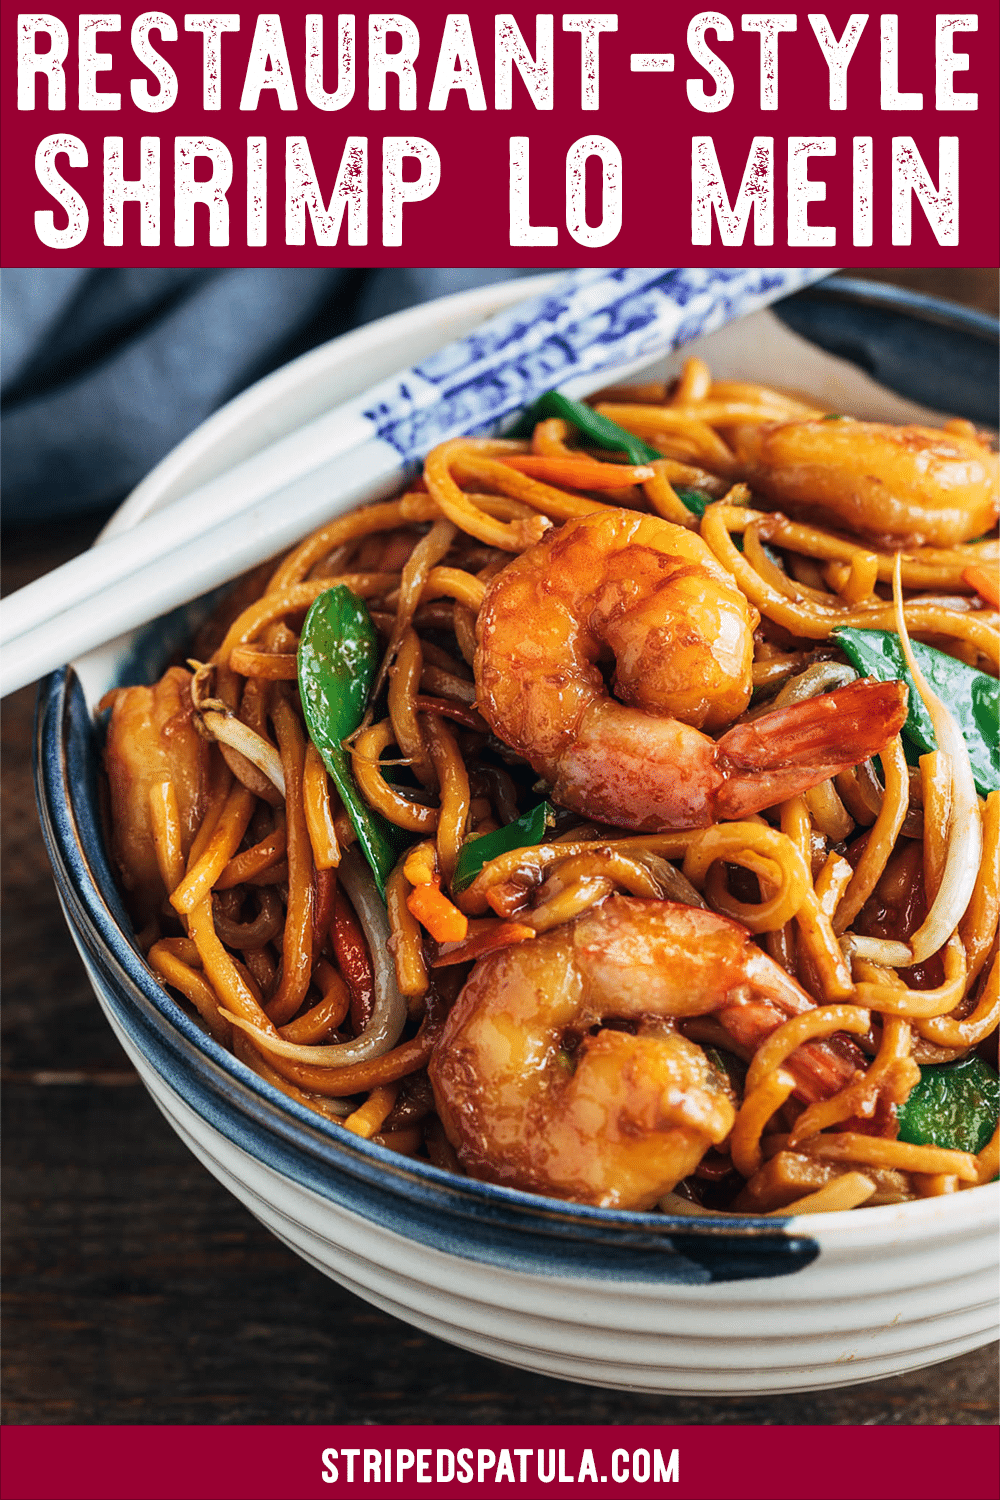 Takeout Fakeout! See how easy it is to make restaurant-quality Shrimp Lo Mein at home in just 30 minutes, prep to finish. Weeknight dinner made easy. #chinesefood #takeoutfakeout #dinnerrecipes